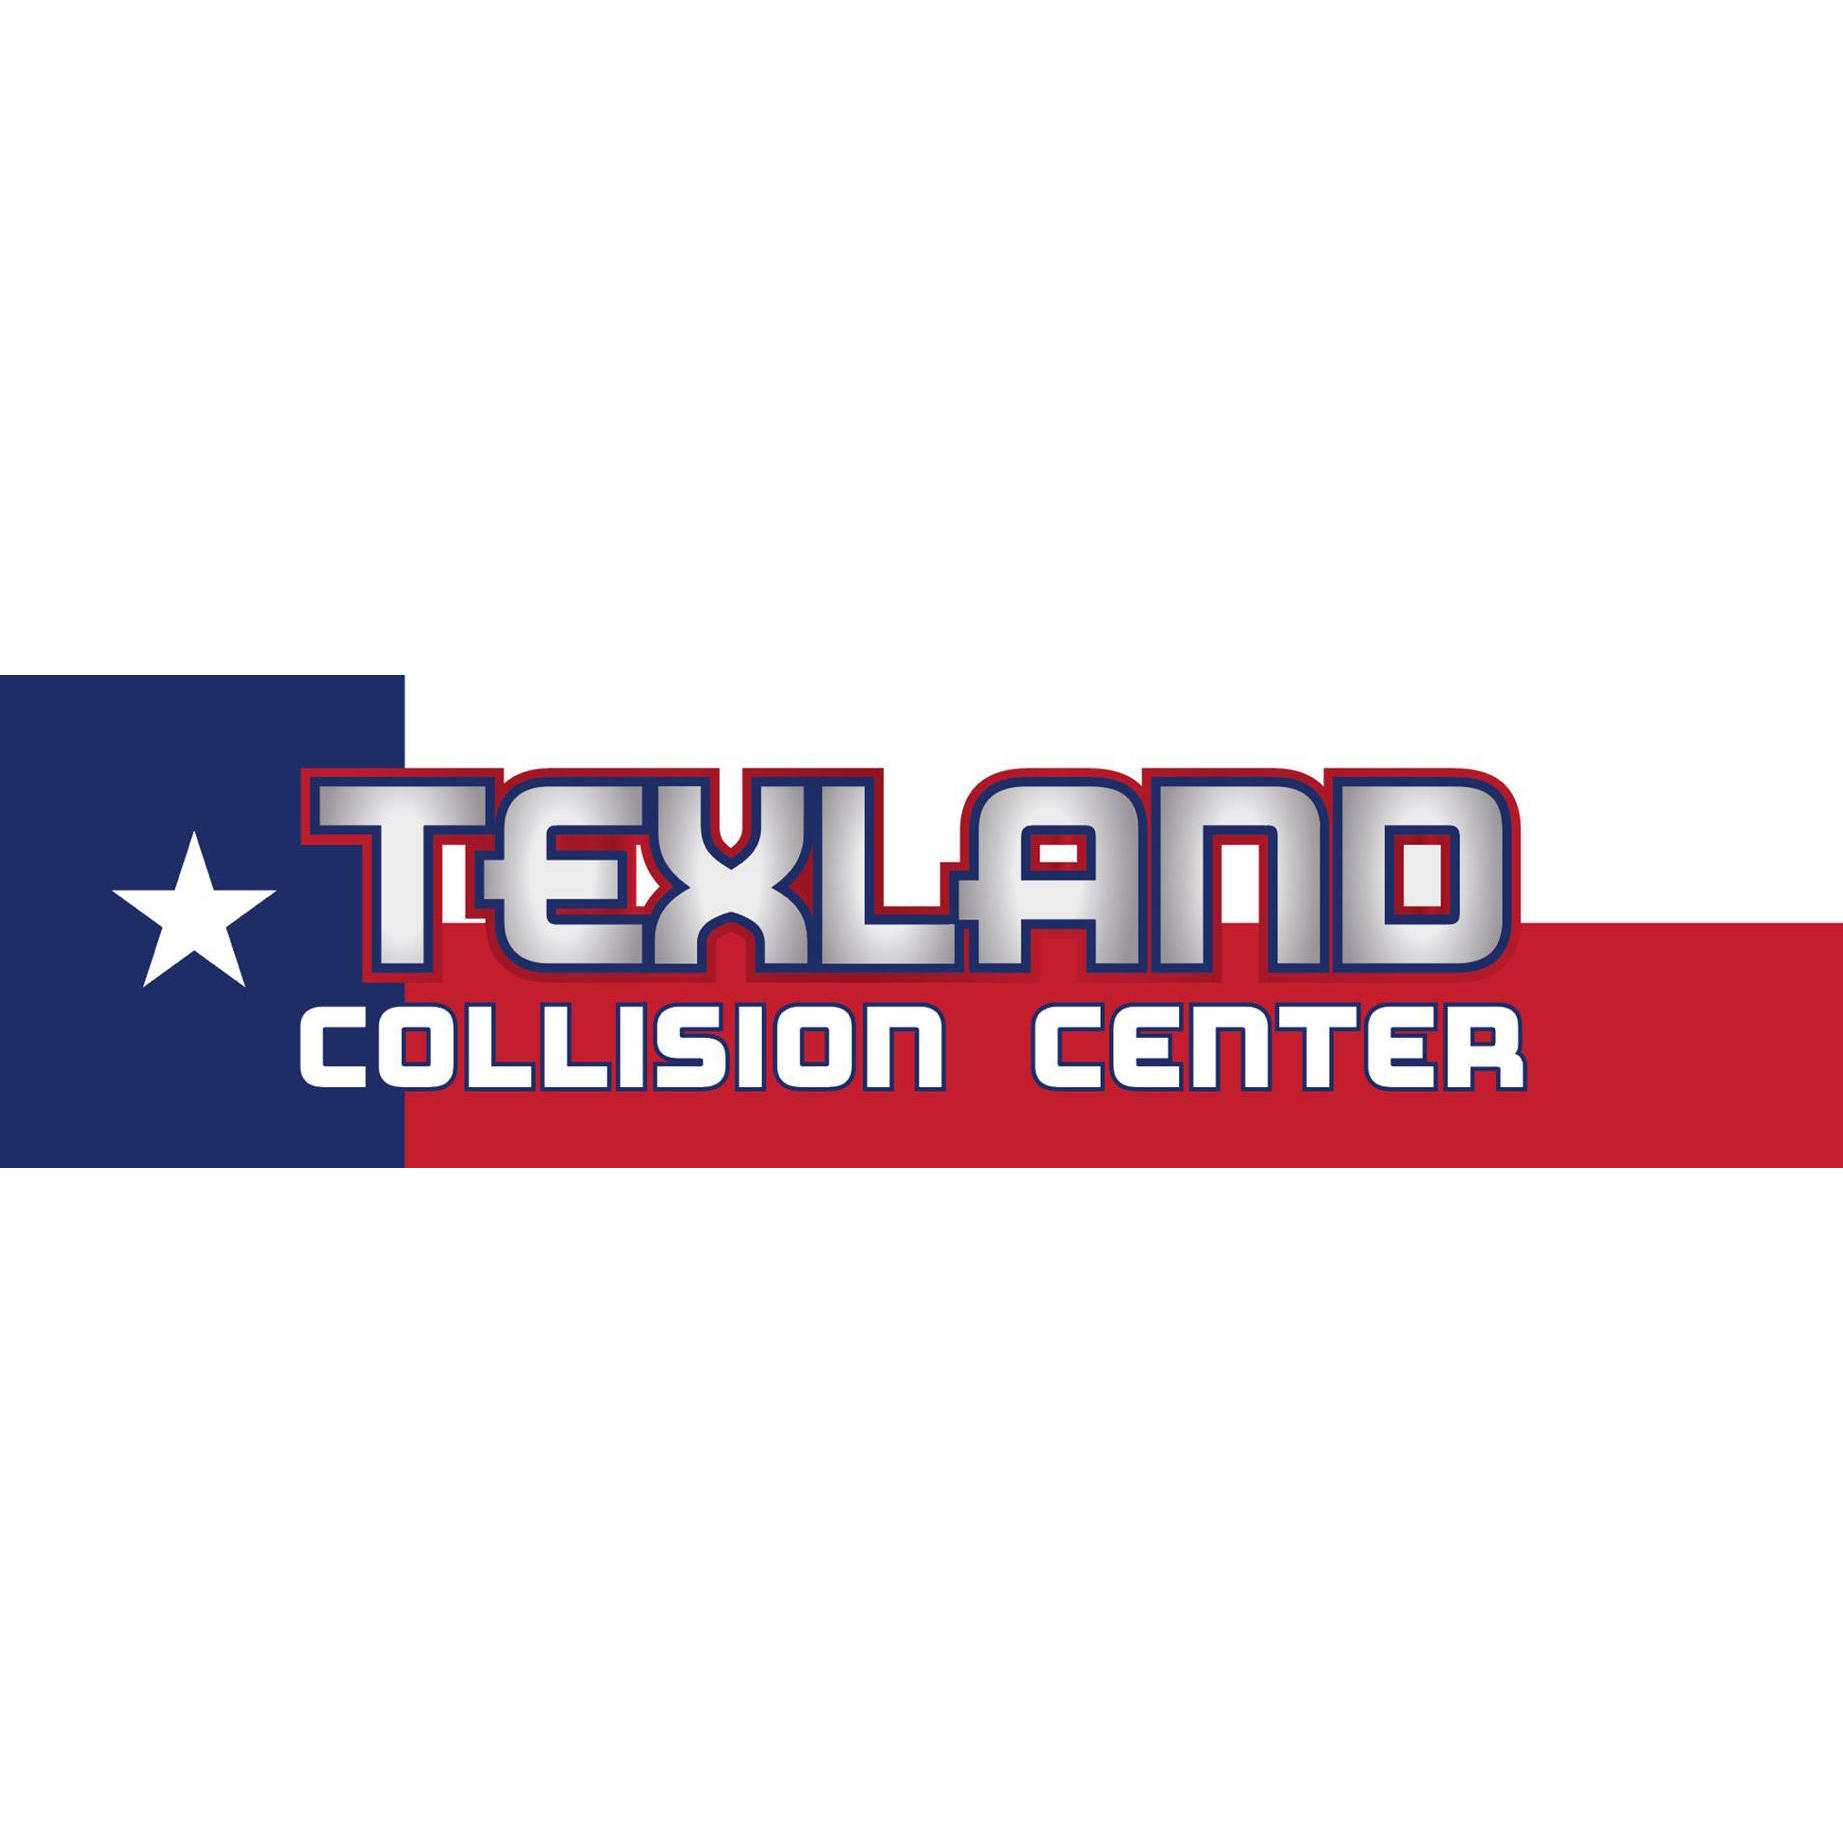 Texland Collision Center - Midland, TX - General Auto Repair & Service